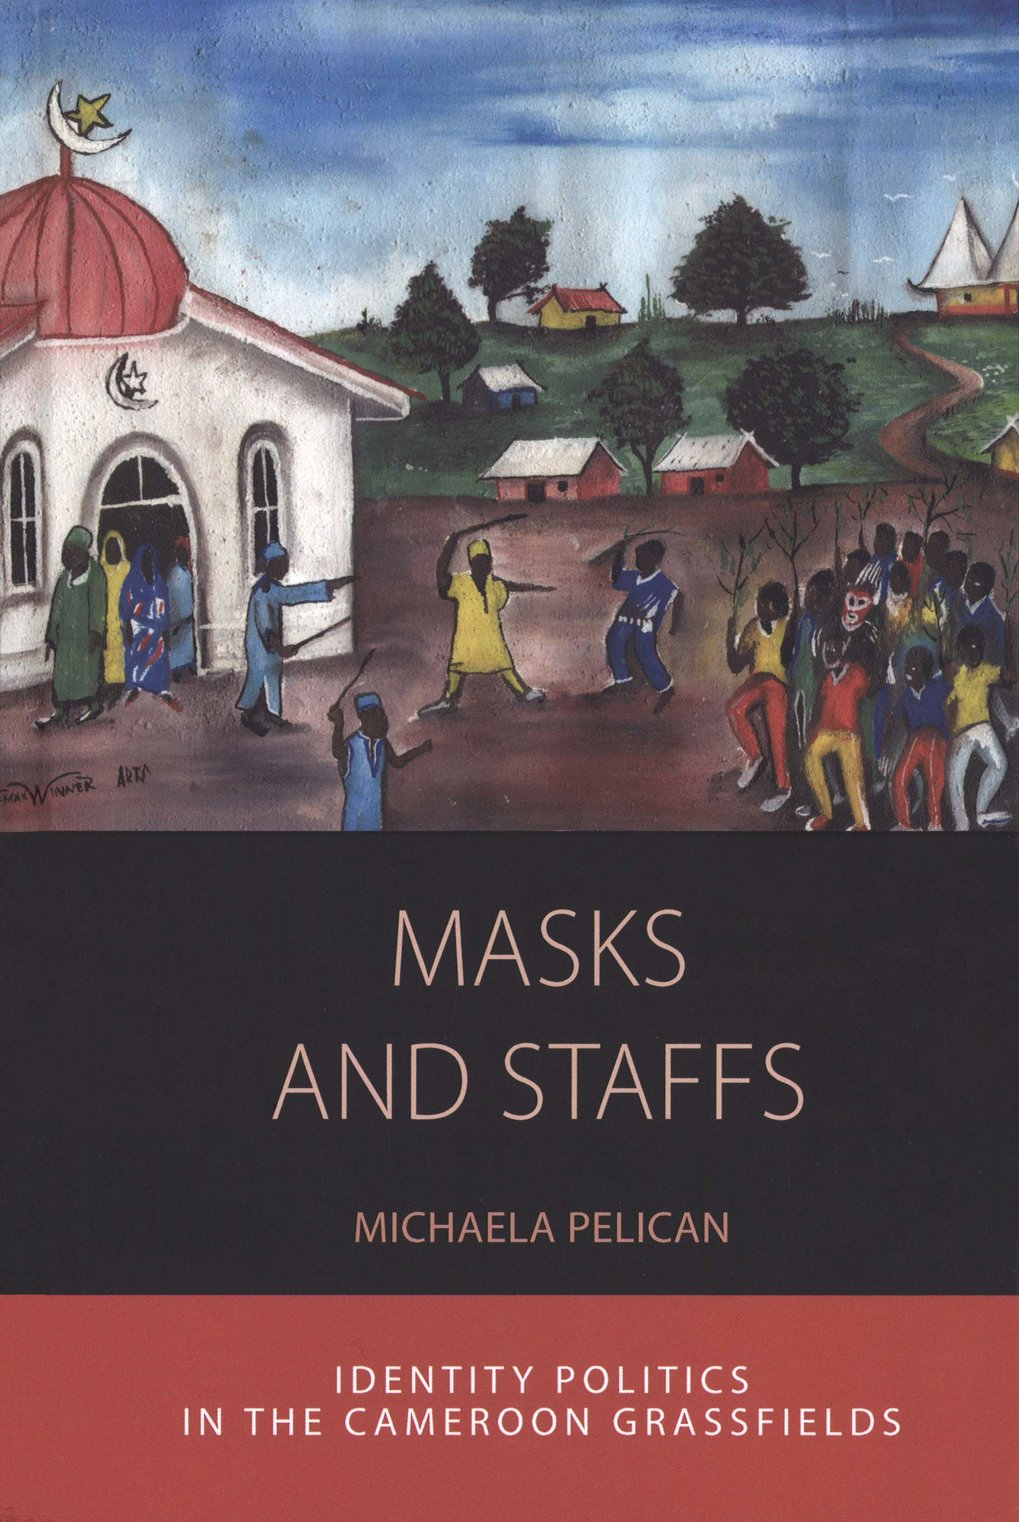 Masks and Staffs. Identity politics in the Cameroon grassfields